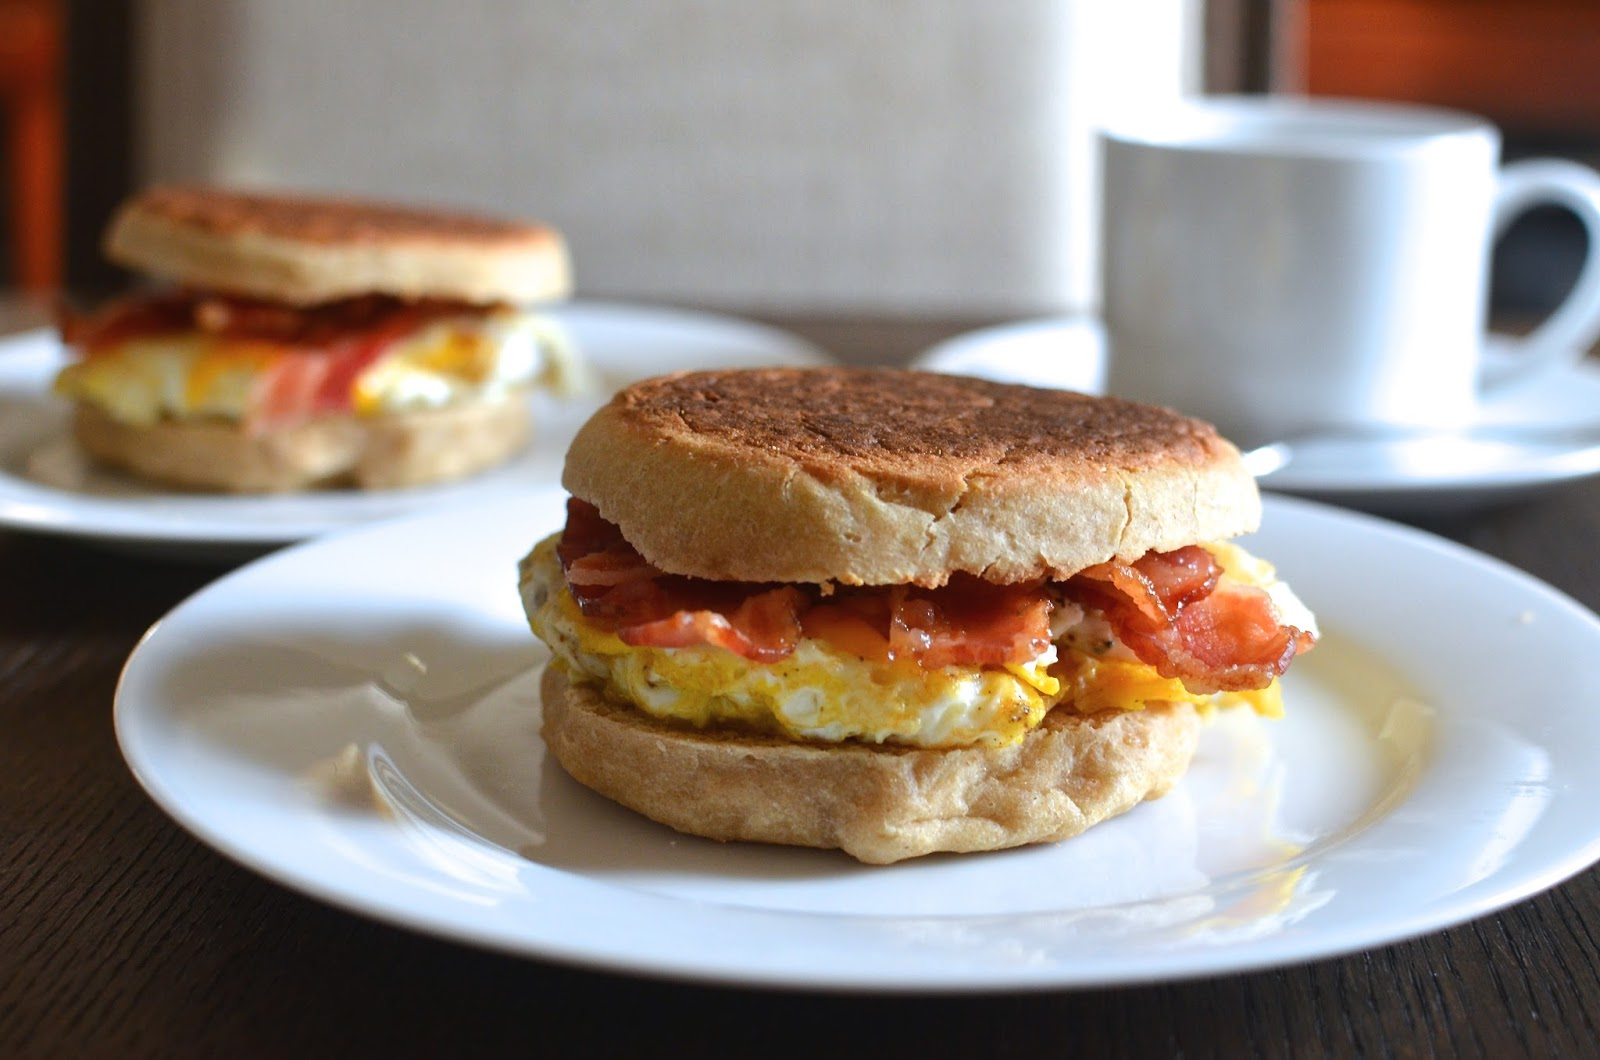 Playing with flour easy english muffin recipe this recipe makes fairly sizable english muffins about 4 inches round so its a great size for hearty weekend breakfast sandwiches forumfinder Gallery